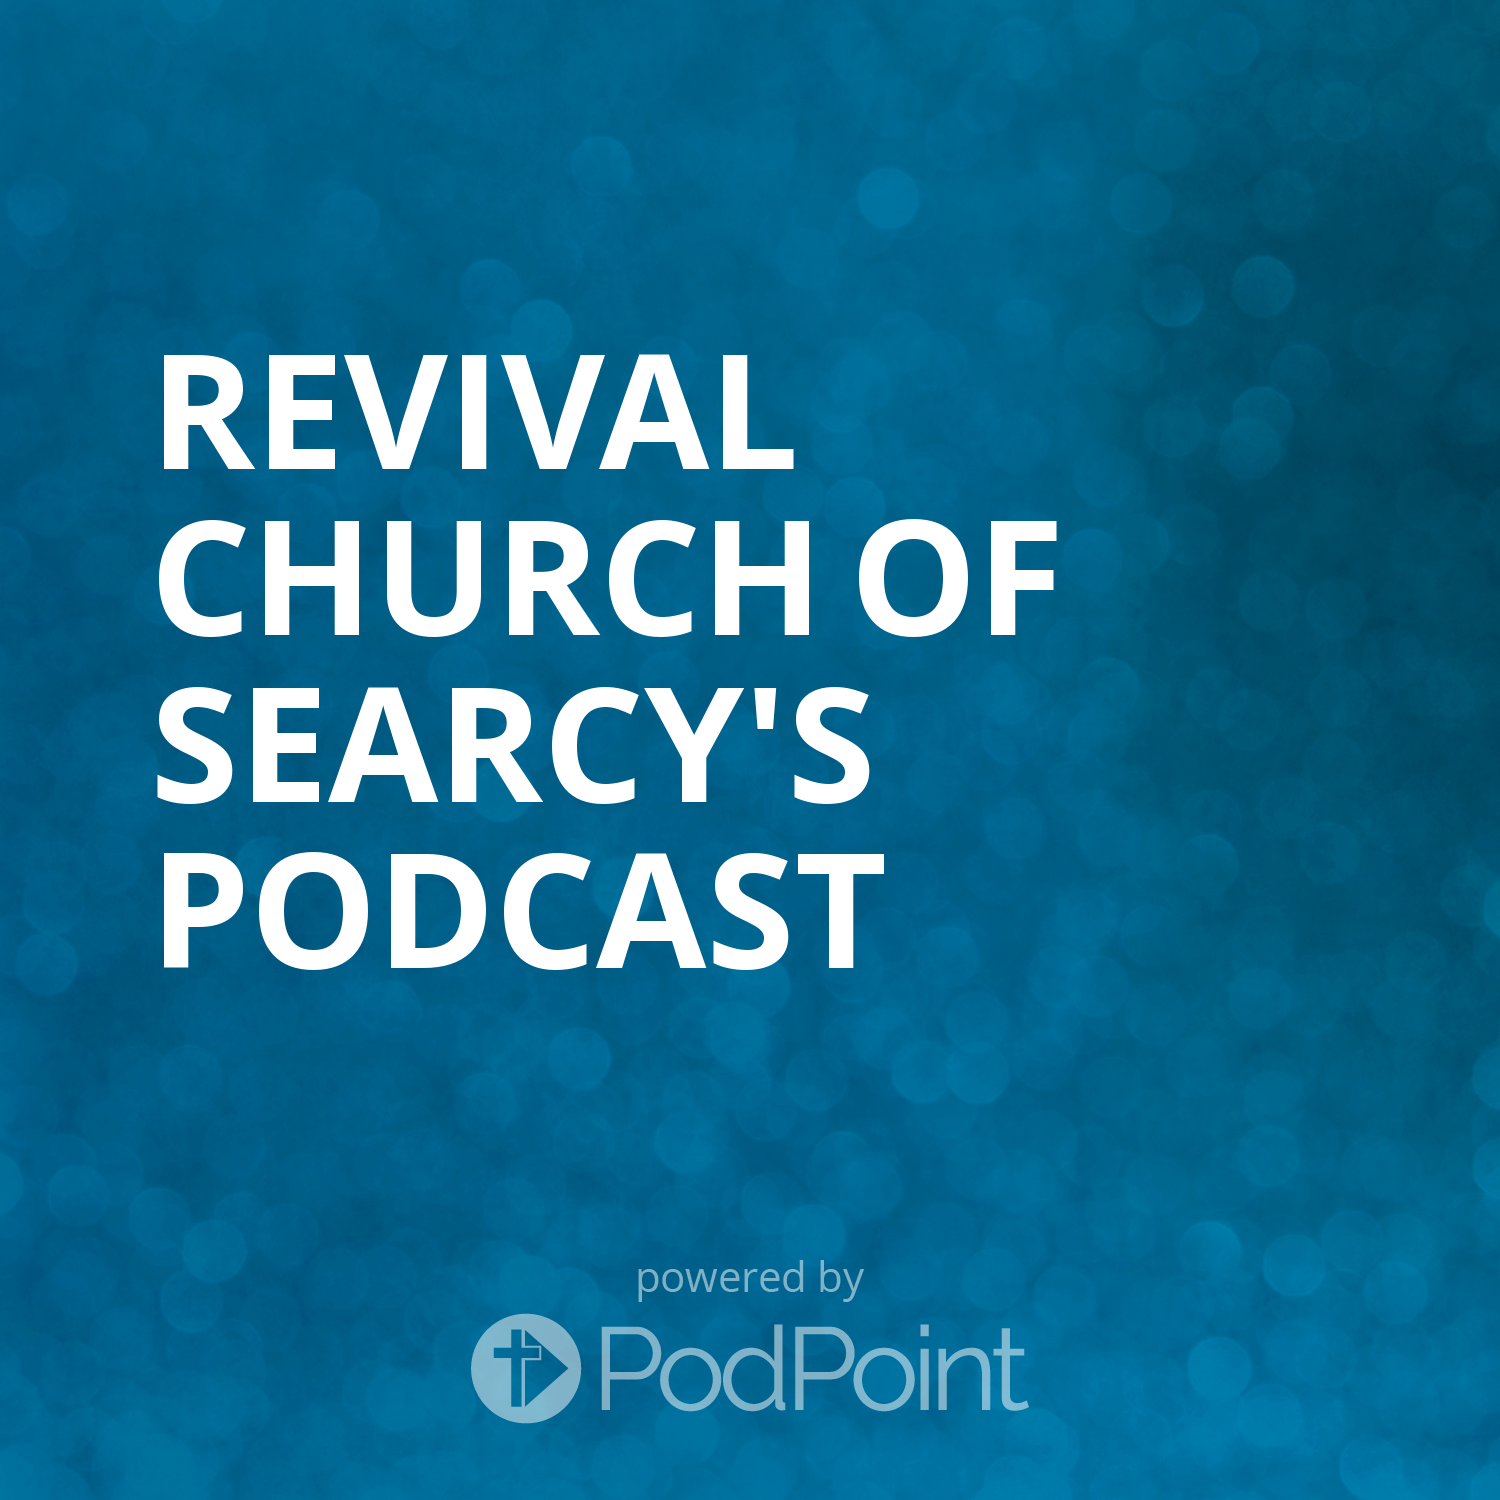 Revival Church of Searcy's Podcast